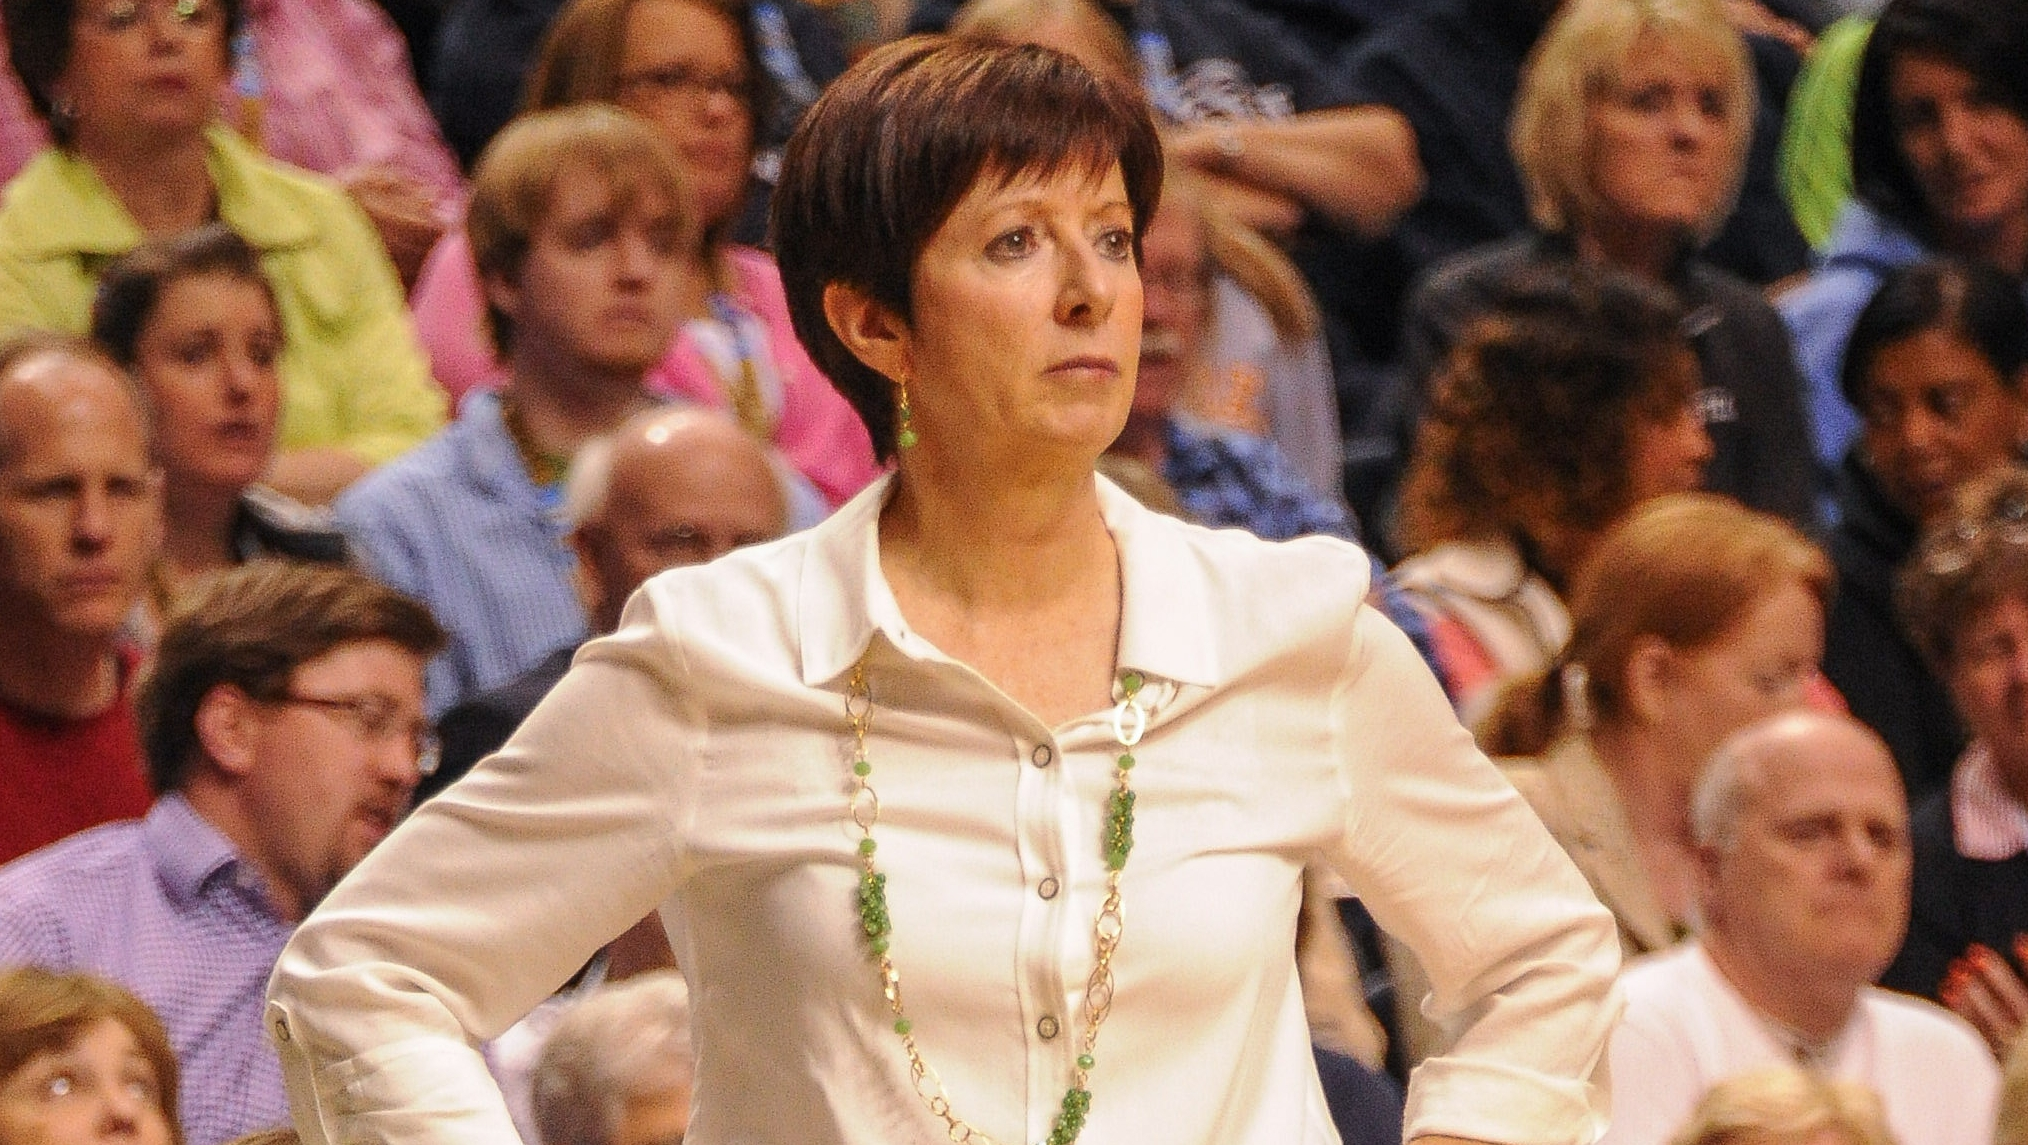 Dishin & Swishin 11/05/14 Podcast: Coming off a record-breaking season, Notre Dame coach Muffet McGraw gets ready to do it again